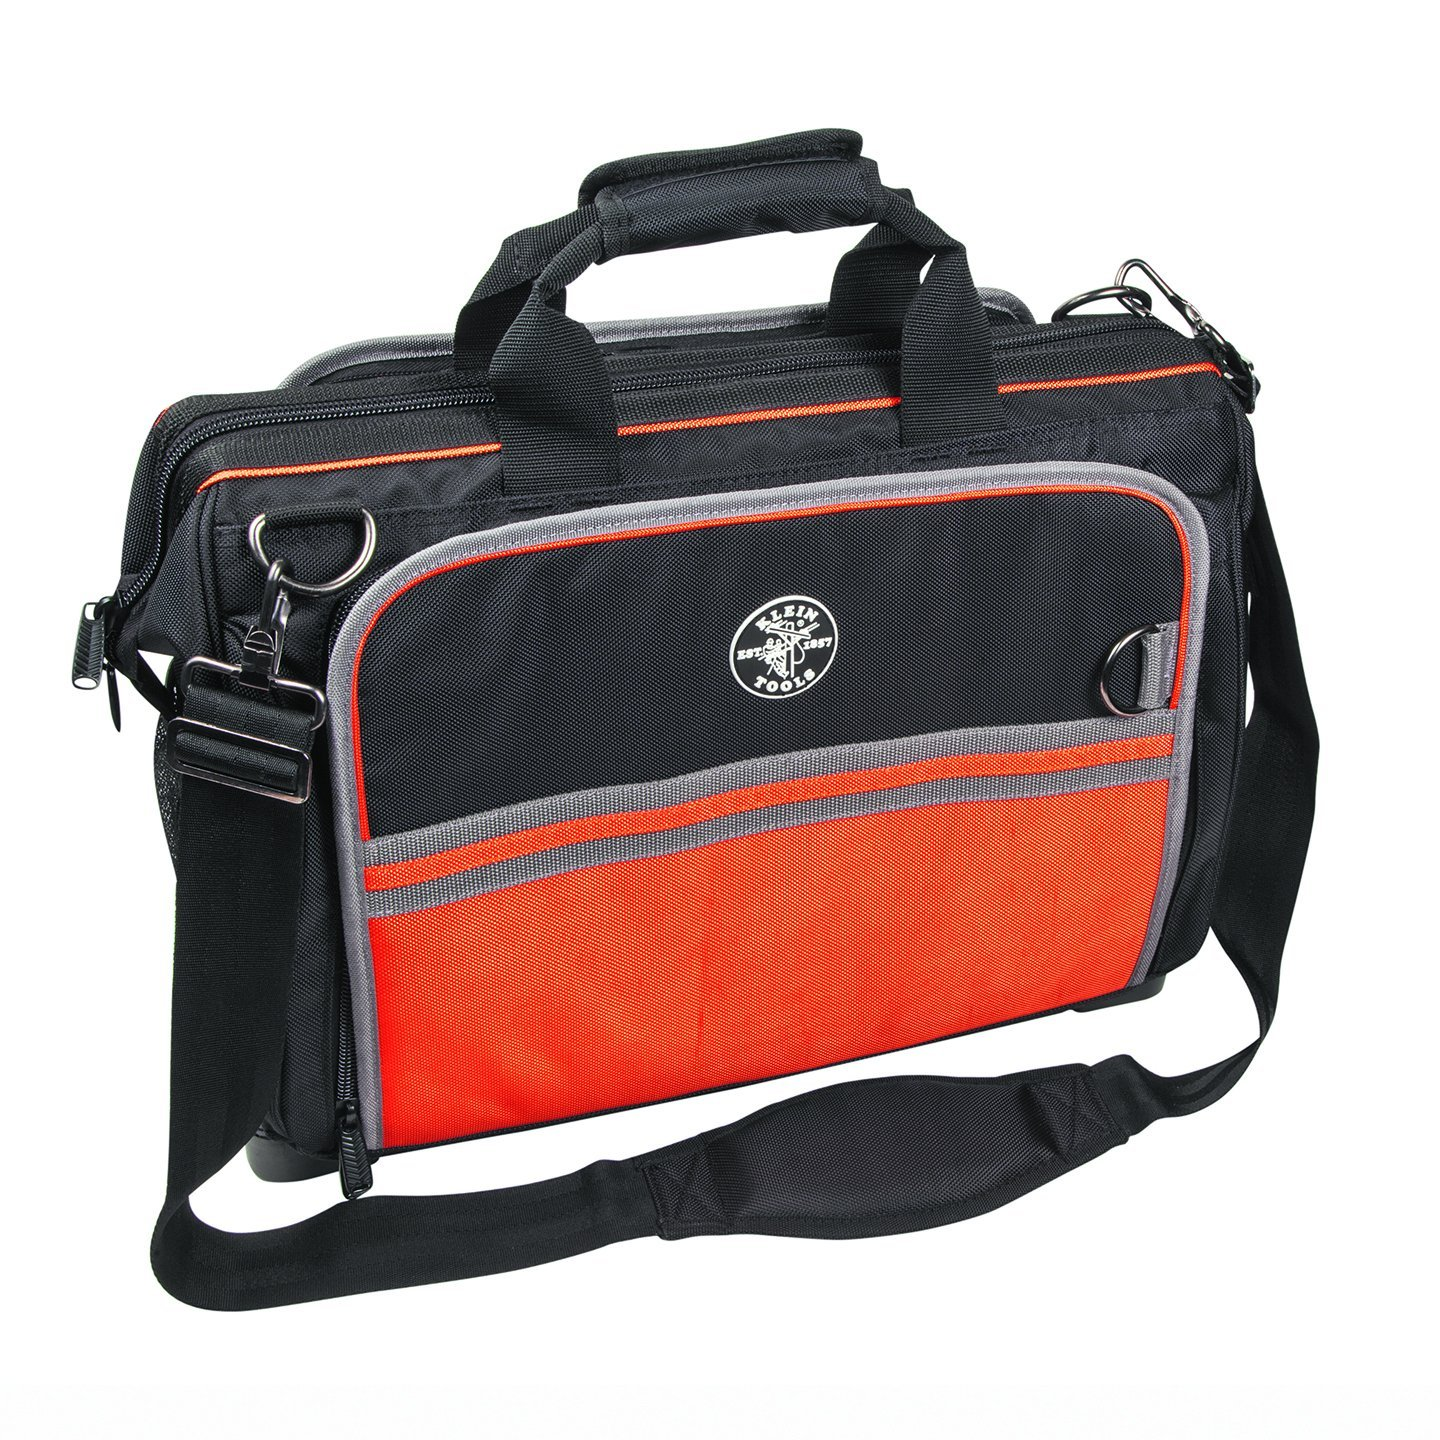 Klein Tools Ultimate Electrician's Bag